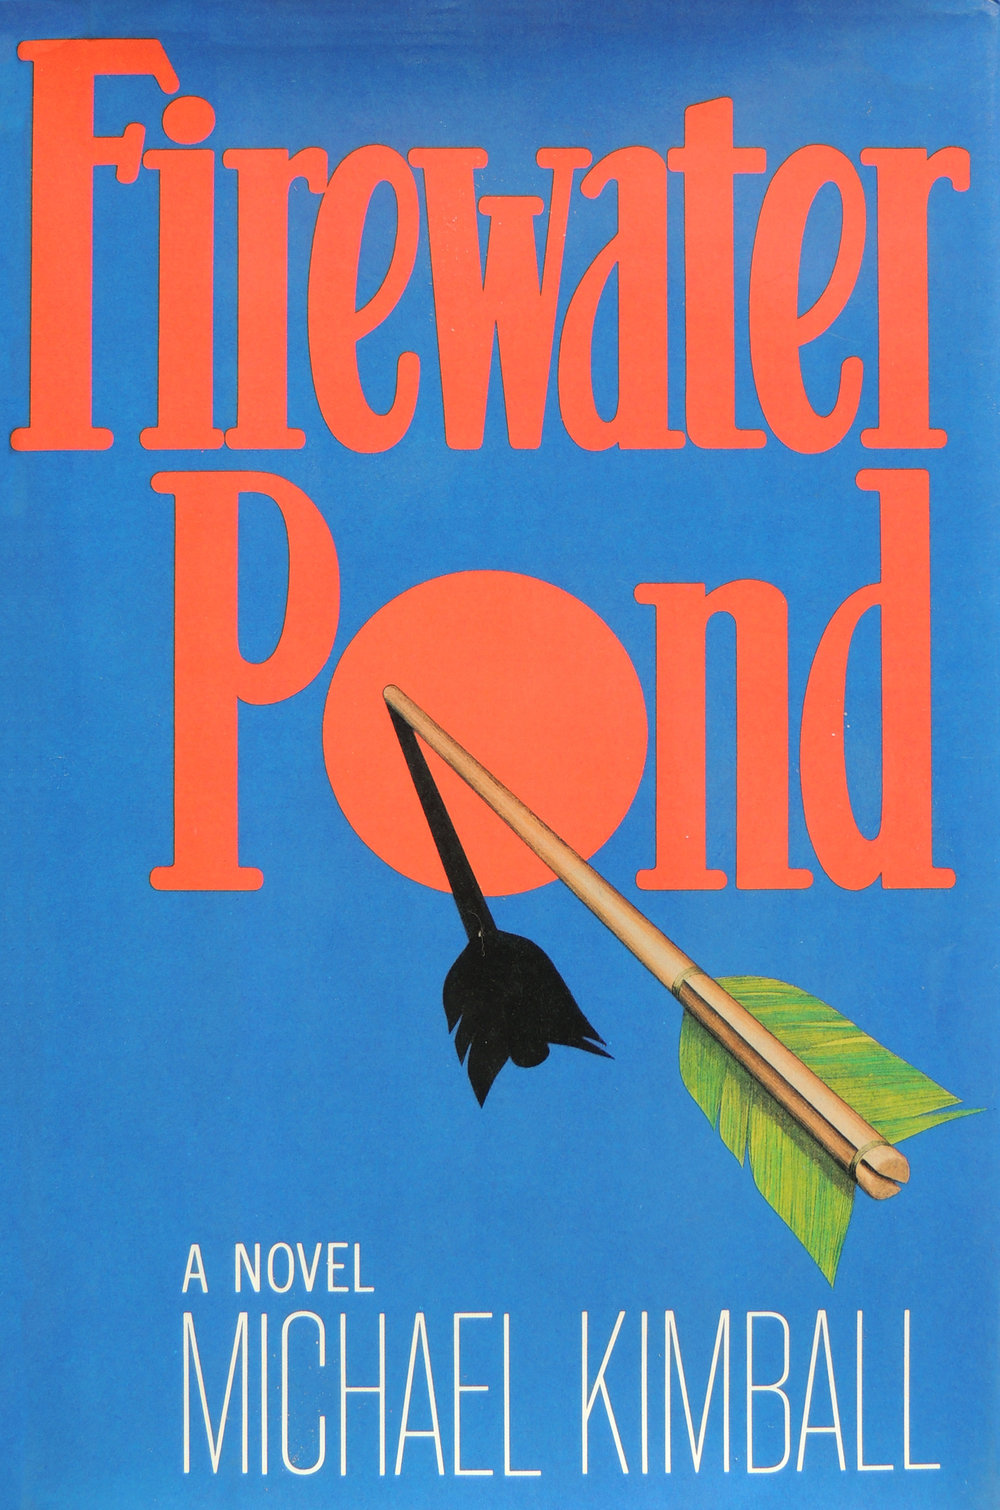 Firewater-Pond-novel-Michael-Kimball-book-jacket-US.jpg